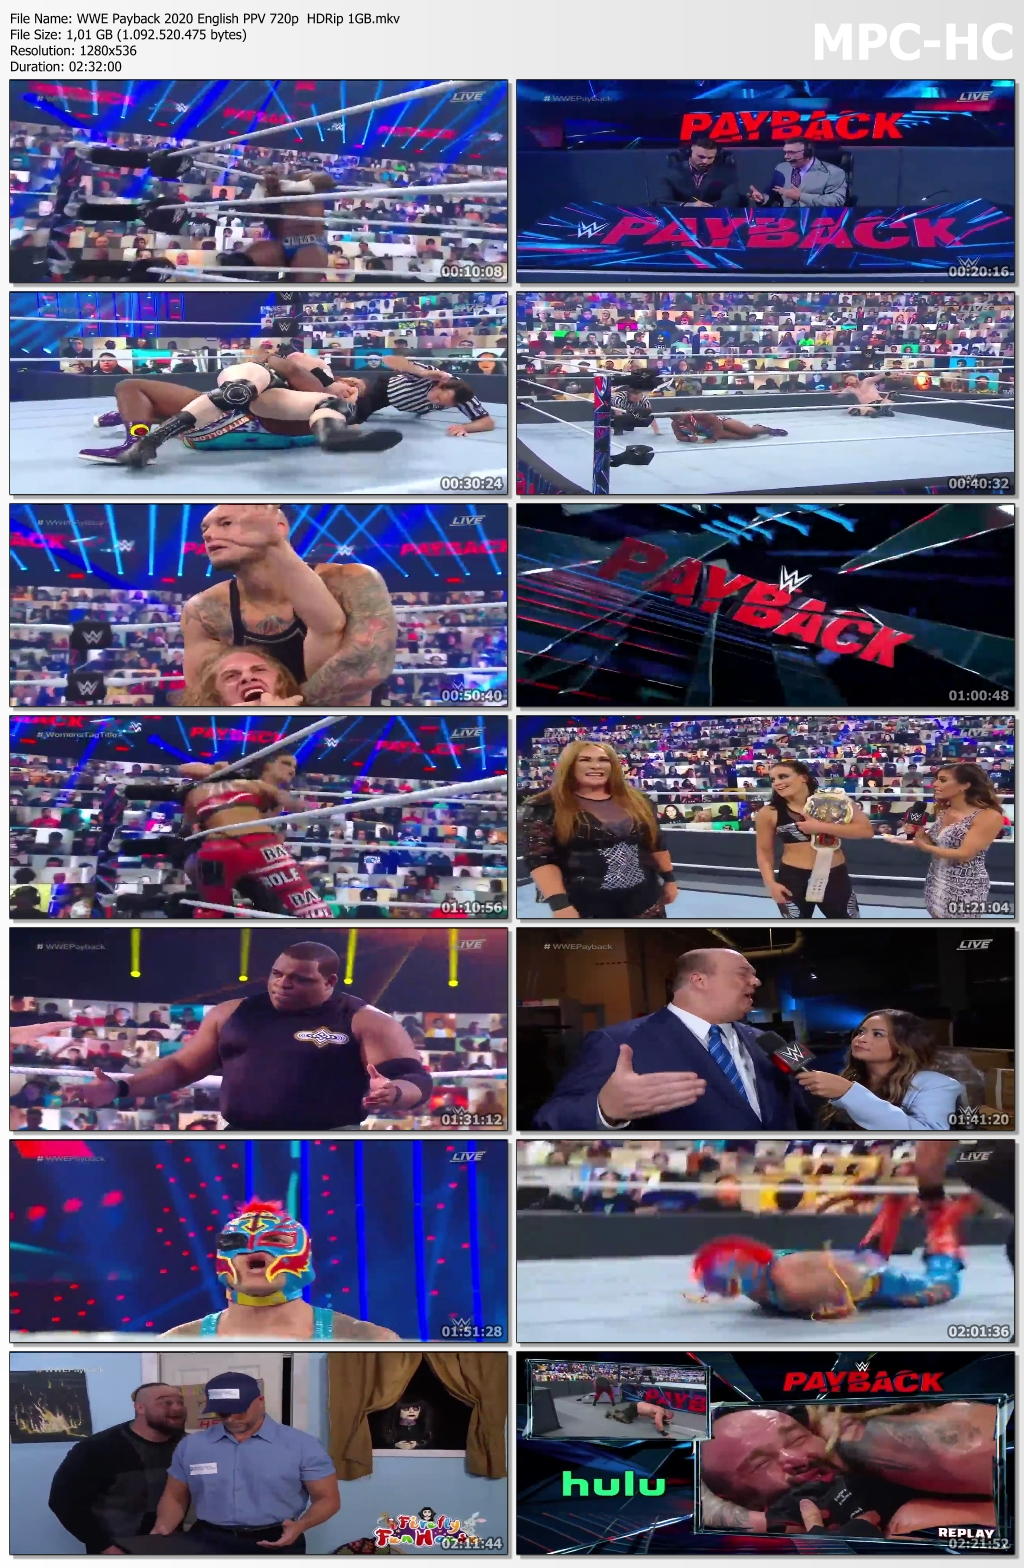 WWE-Payback-2020-English-PPV-720p-HDRip-1-GB-mkv-thumbs